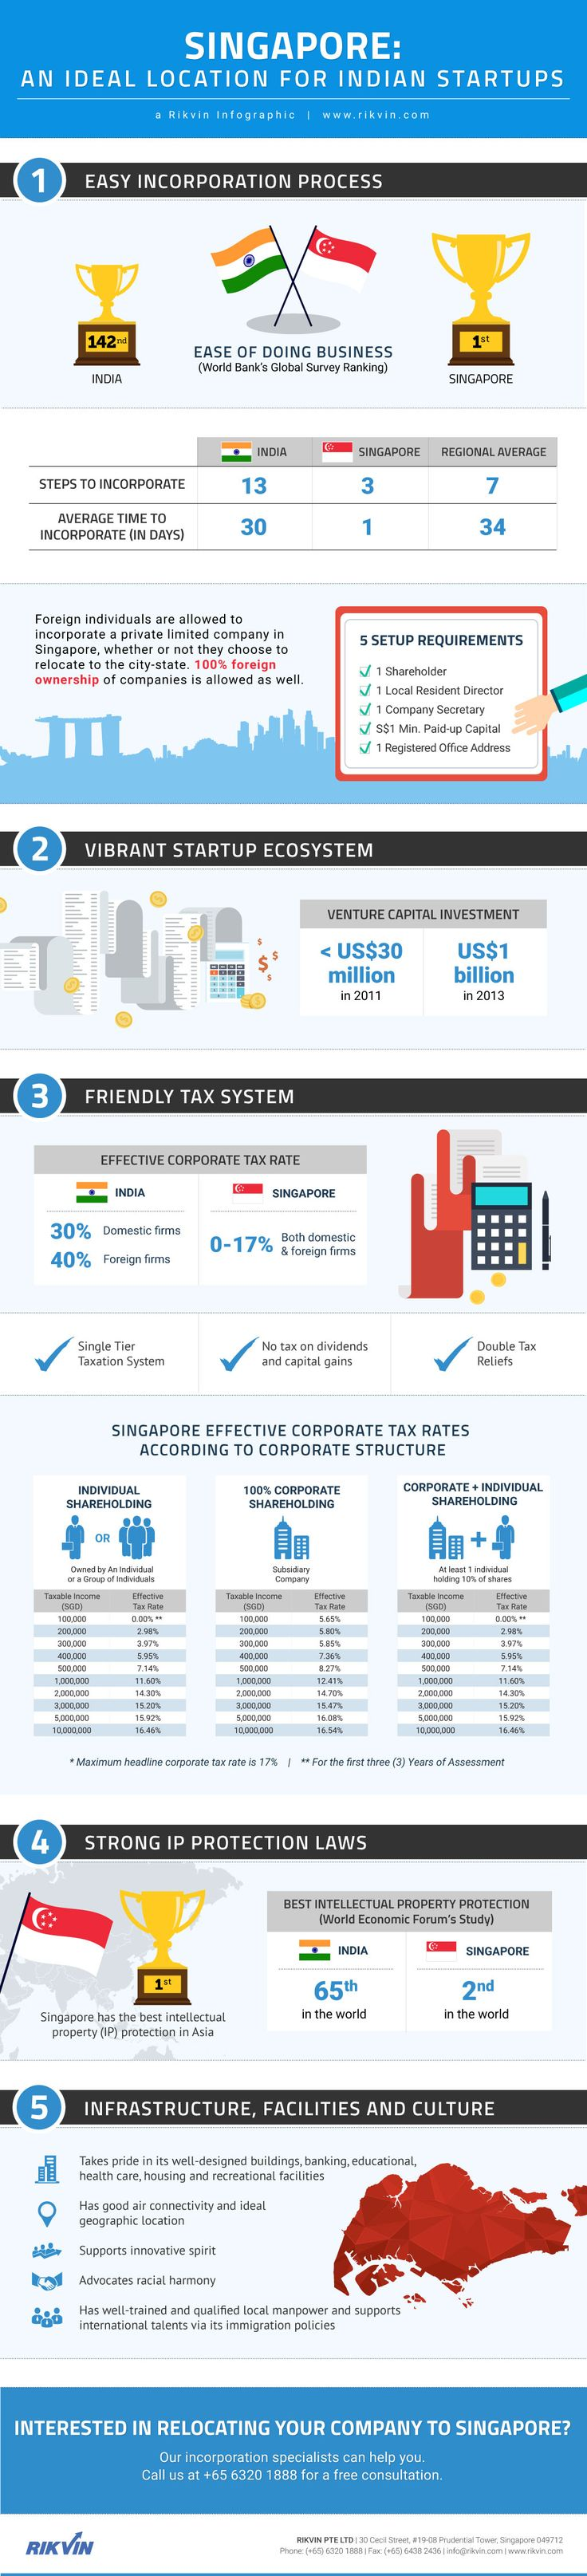 Singapore is now considered the most ideal location for Indian Startups. In this...